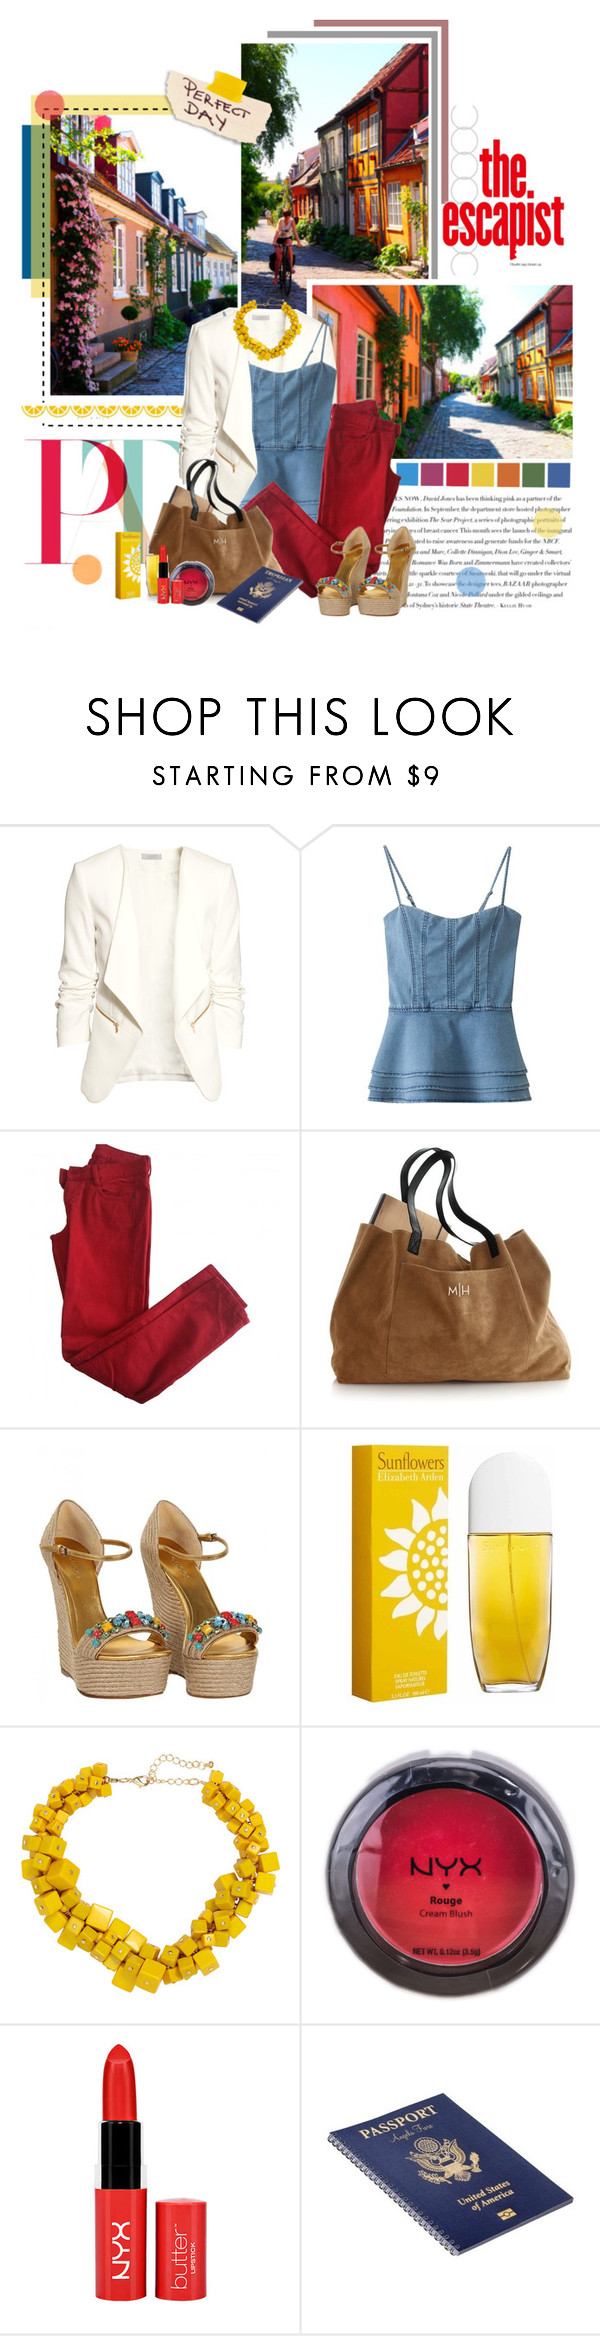 """""""Finding Happiness"""" by frouweisblume ❤ liked on Polyvore featuring Envi, H&M, Comptoir Des Cotonniers, Gucci, Elizabeth Arden, NYX and country"""